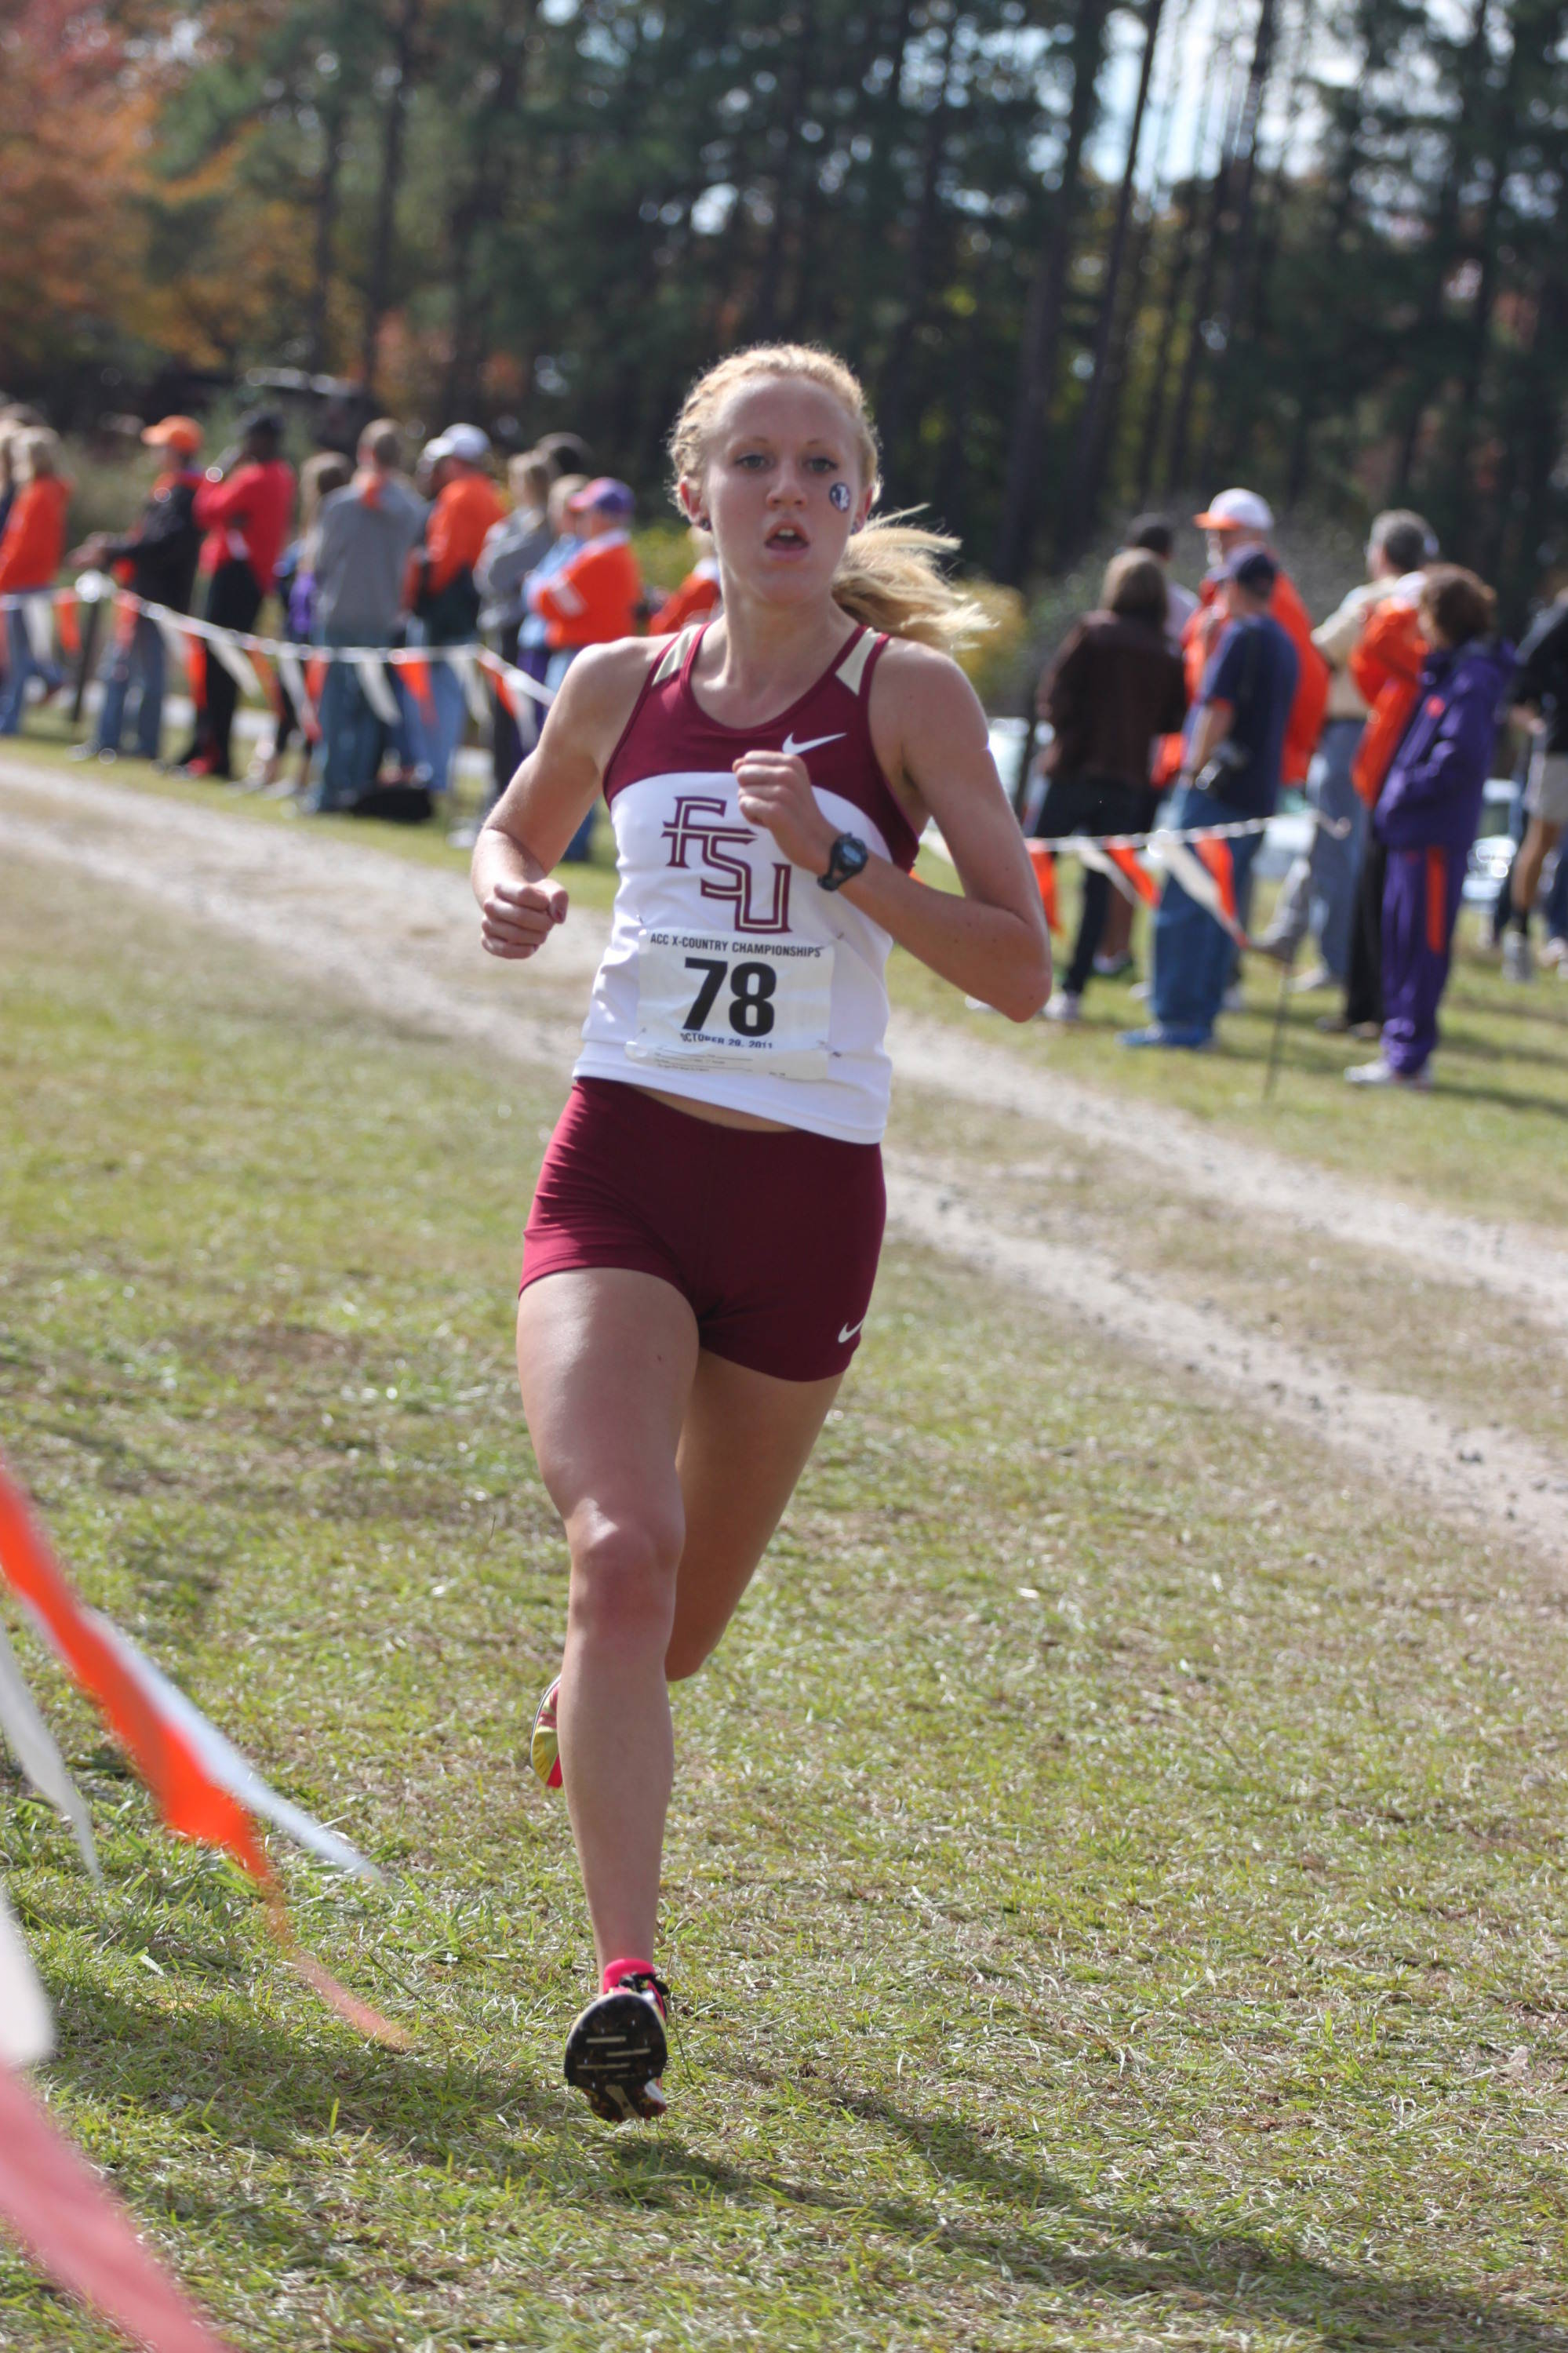 Colleen Quigley earned ACC Freshman of the Year honors in 2011